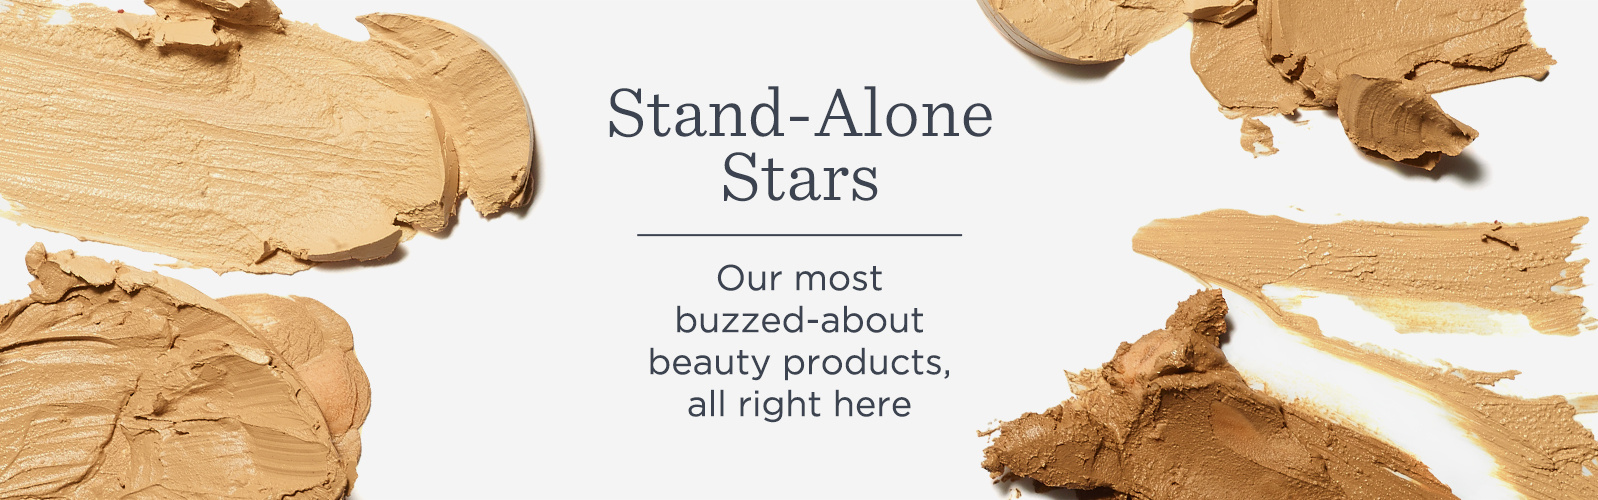 Stand-Alone Stars.  Our most buzzed-about beauty products, all right here.